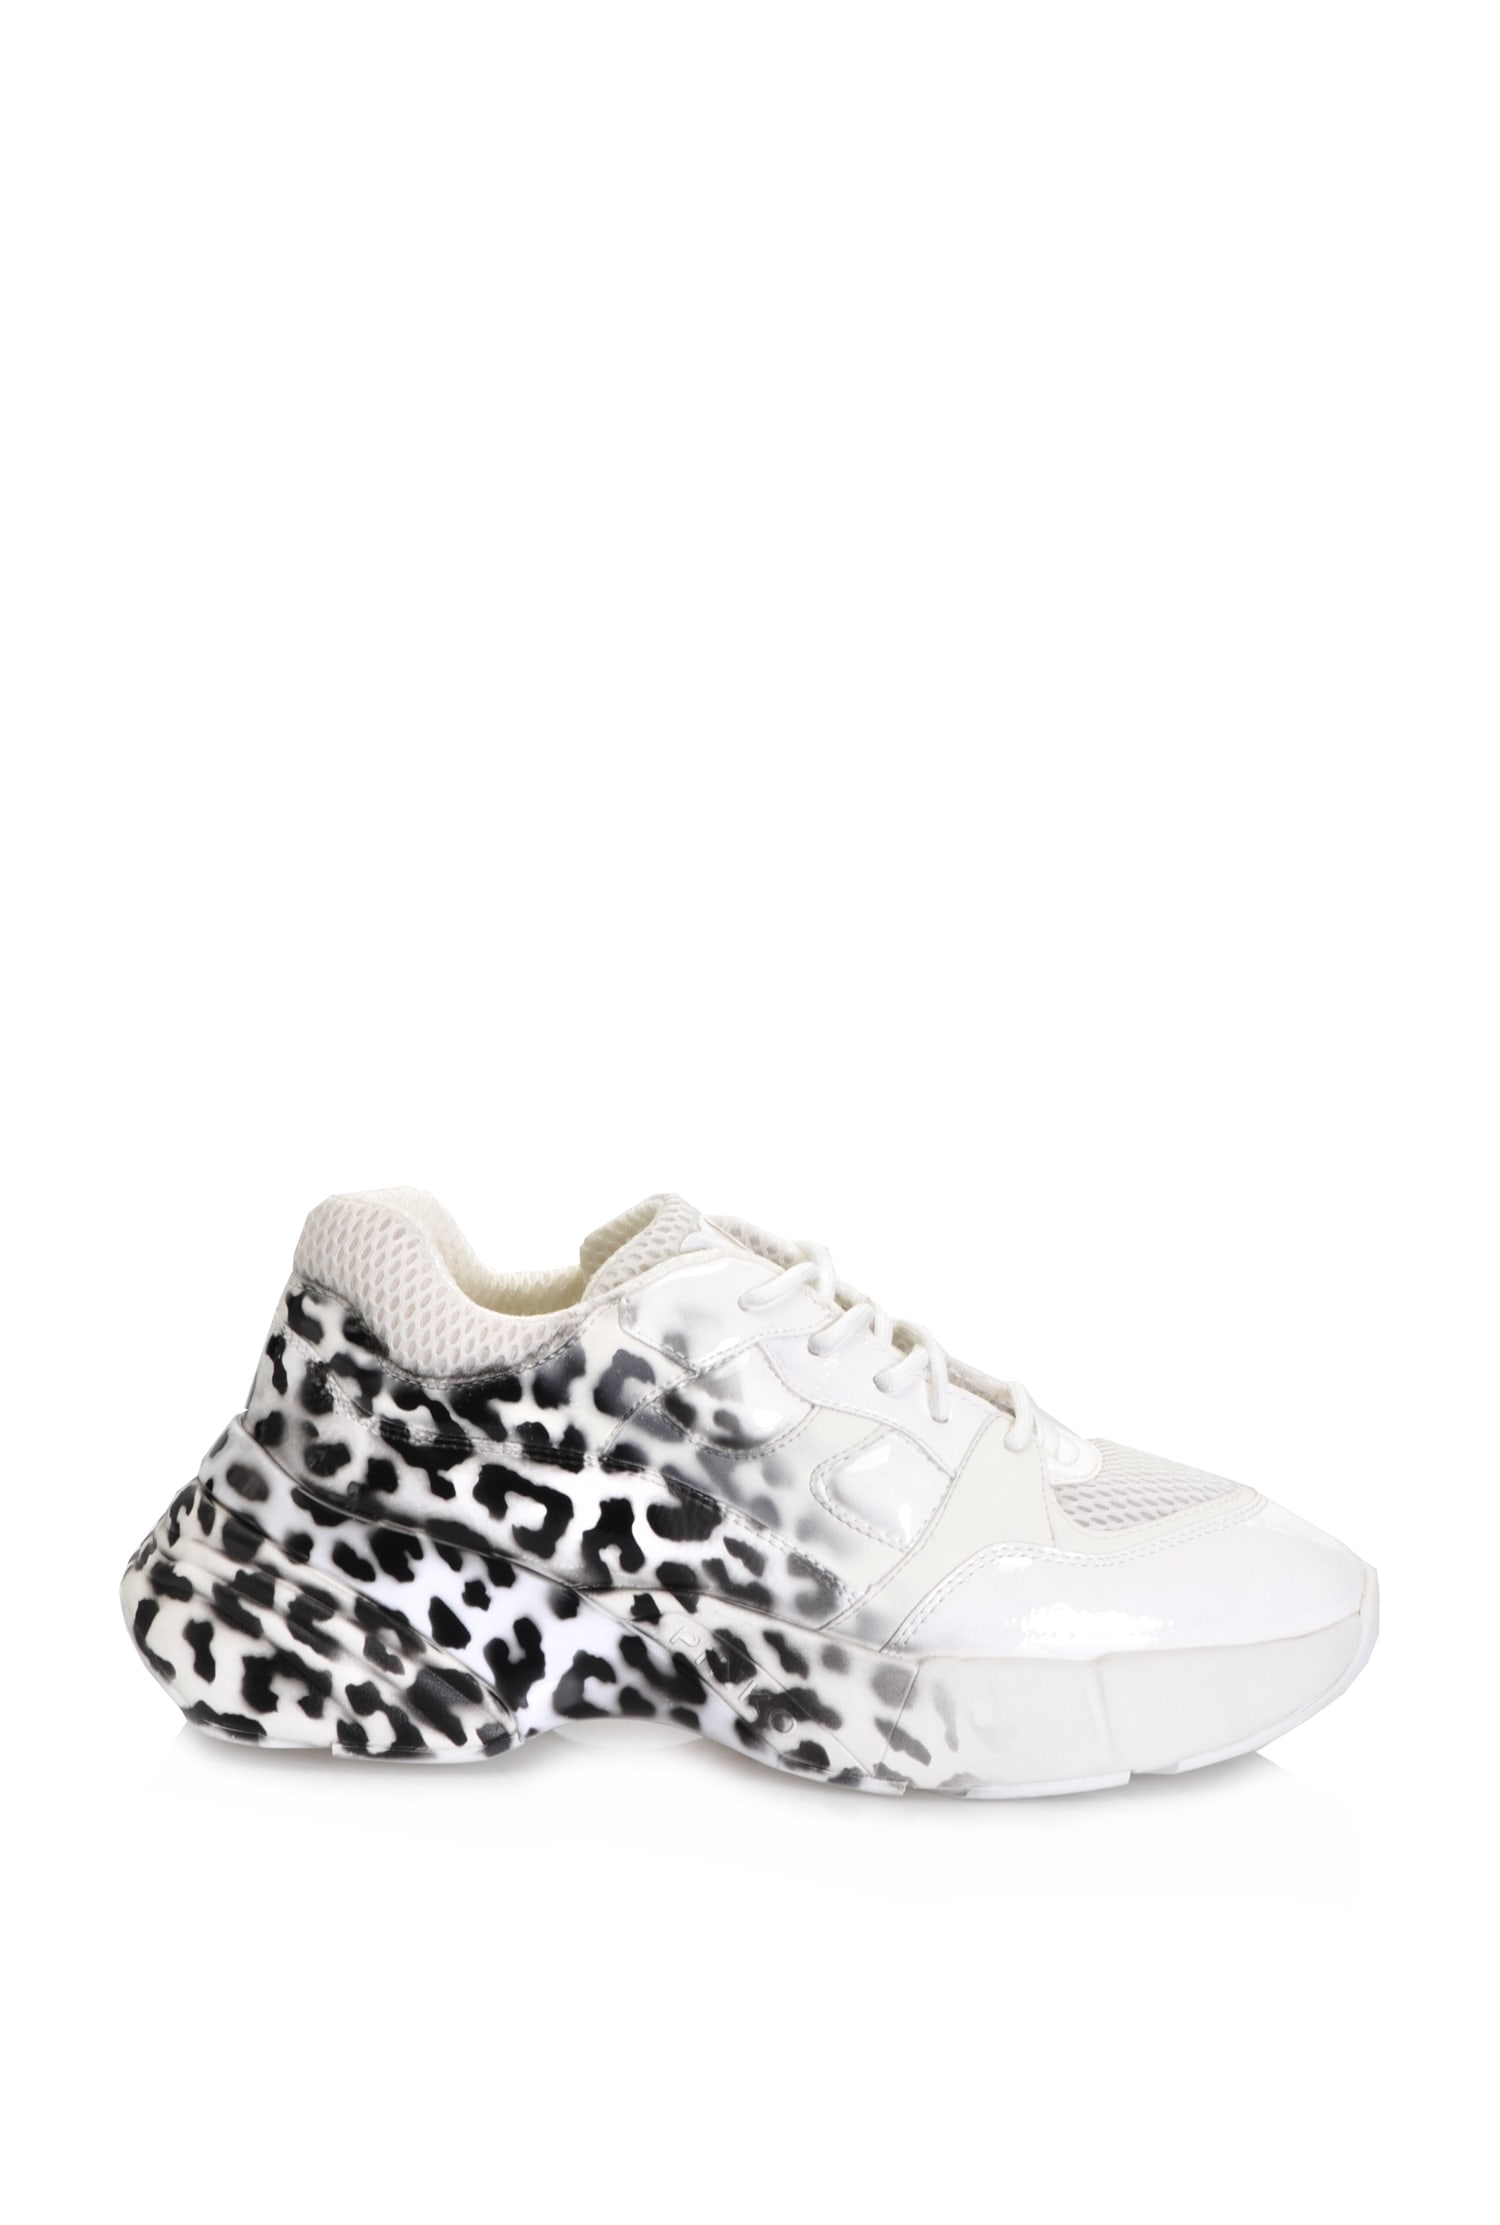 SHOPPING ON LINE PINKO SNEAKERS STAMPA ANIMALIER SFUMATO NEW COLLECTION WOMEN'S SPRING SUMMER 2020